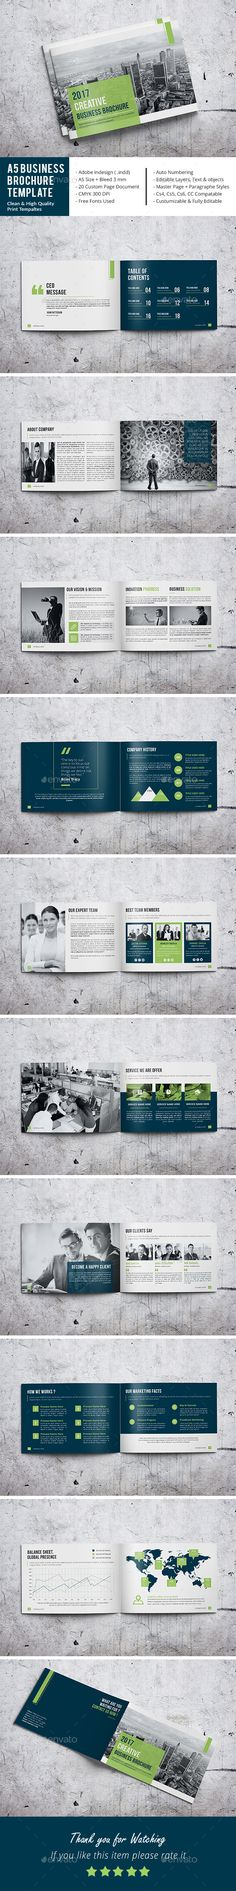 A5 Business Brochure Template - Corporate Brochures | Download: https://graphicriver.net/item/a5-business-brochure-template/18668862?ref=sinzo